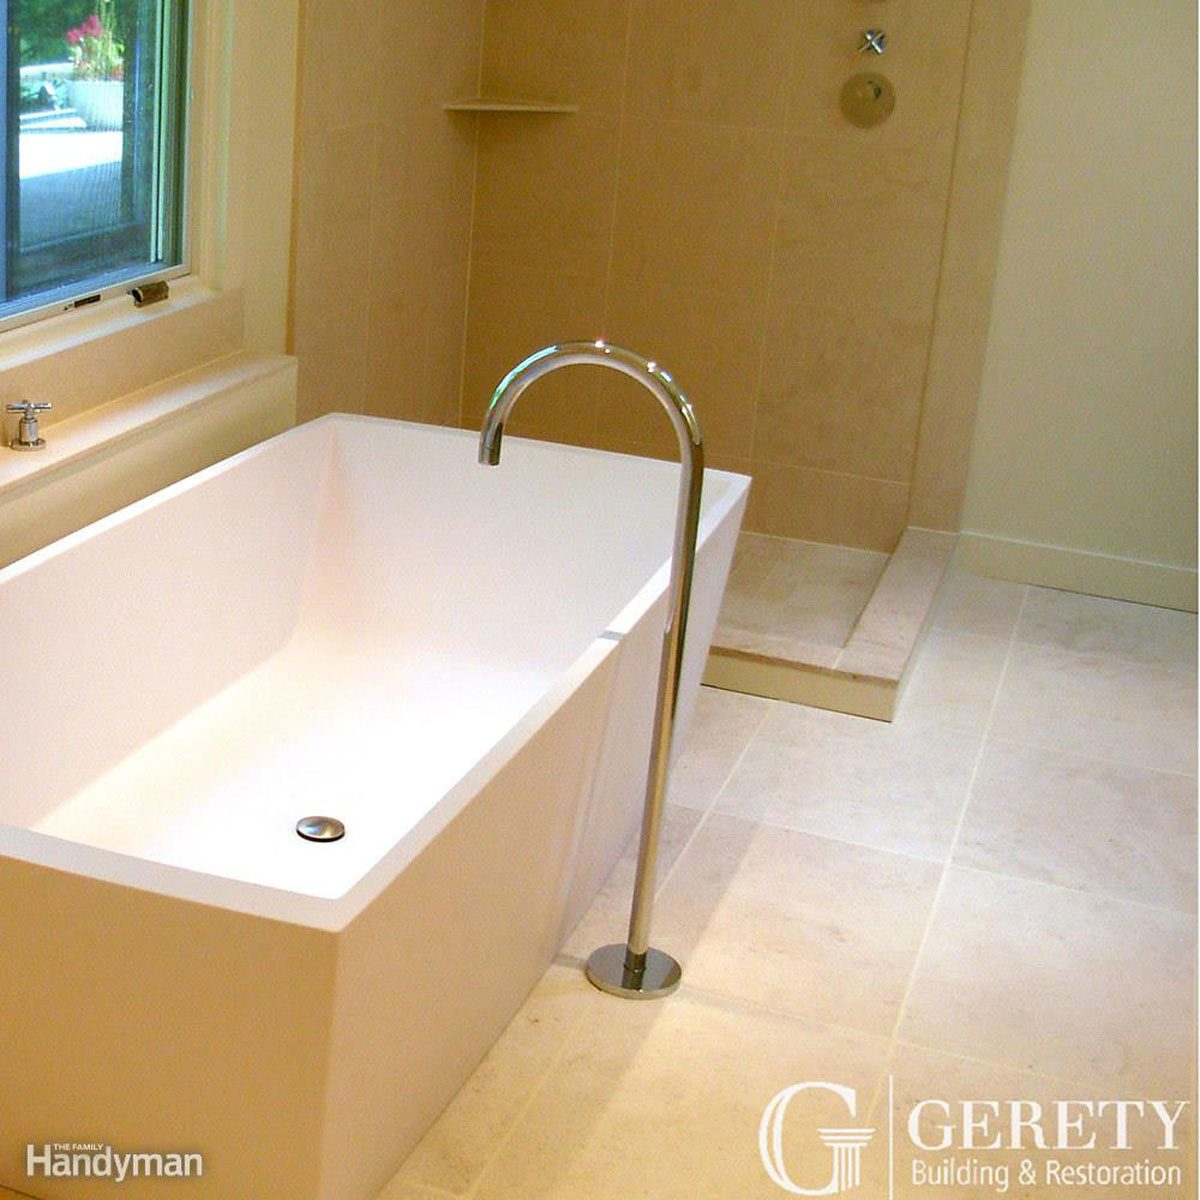 12 Things to Consider When Buying a New Bathtub | Family Handyman ...